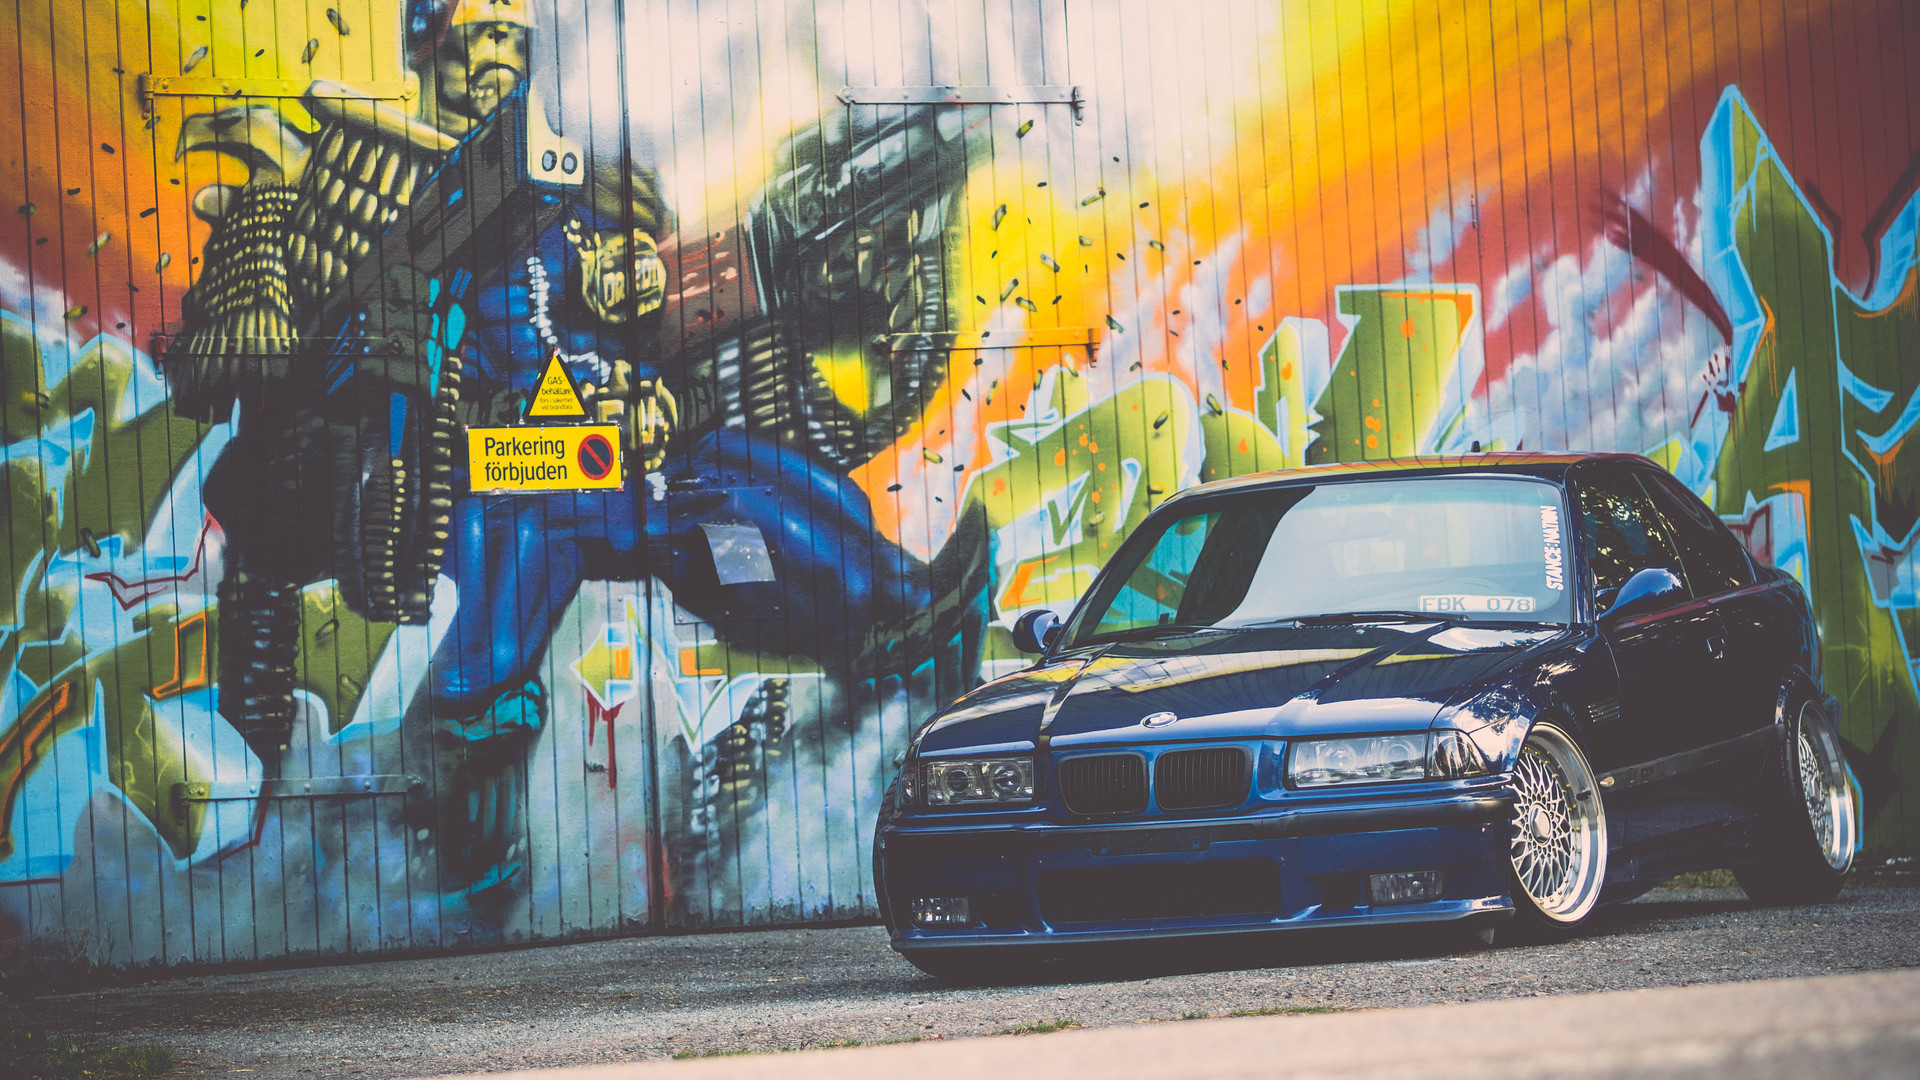 1920x1080 e36, bmw, m3, blue, stance, bmw, tuning, graffiti wallpaper